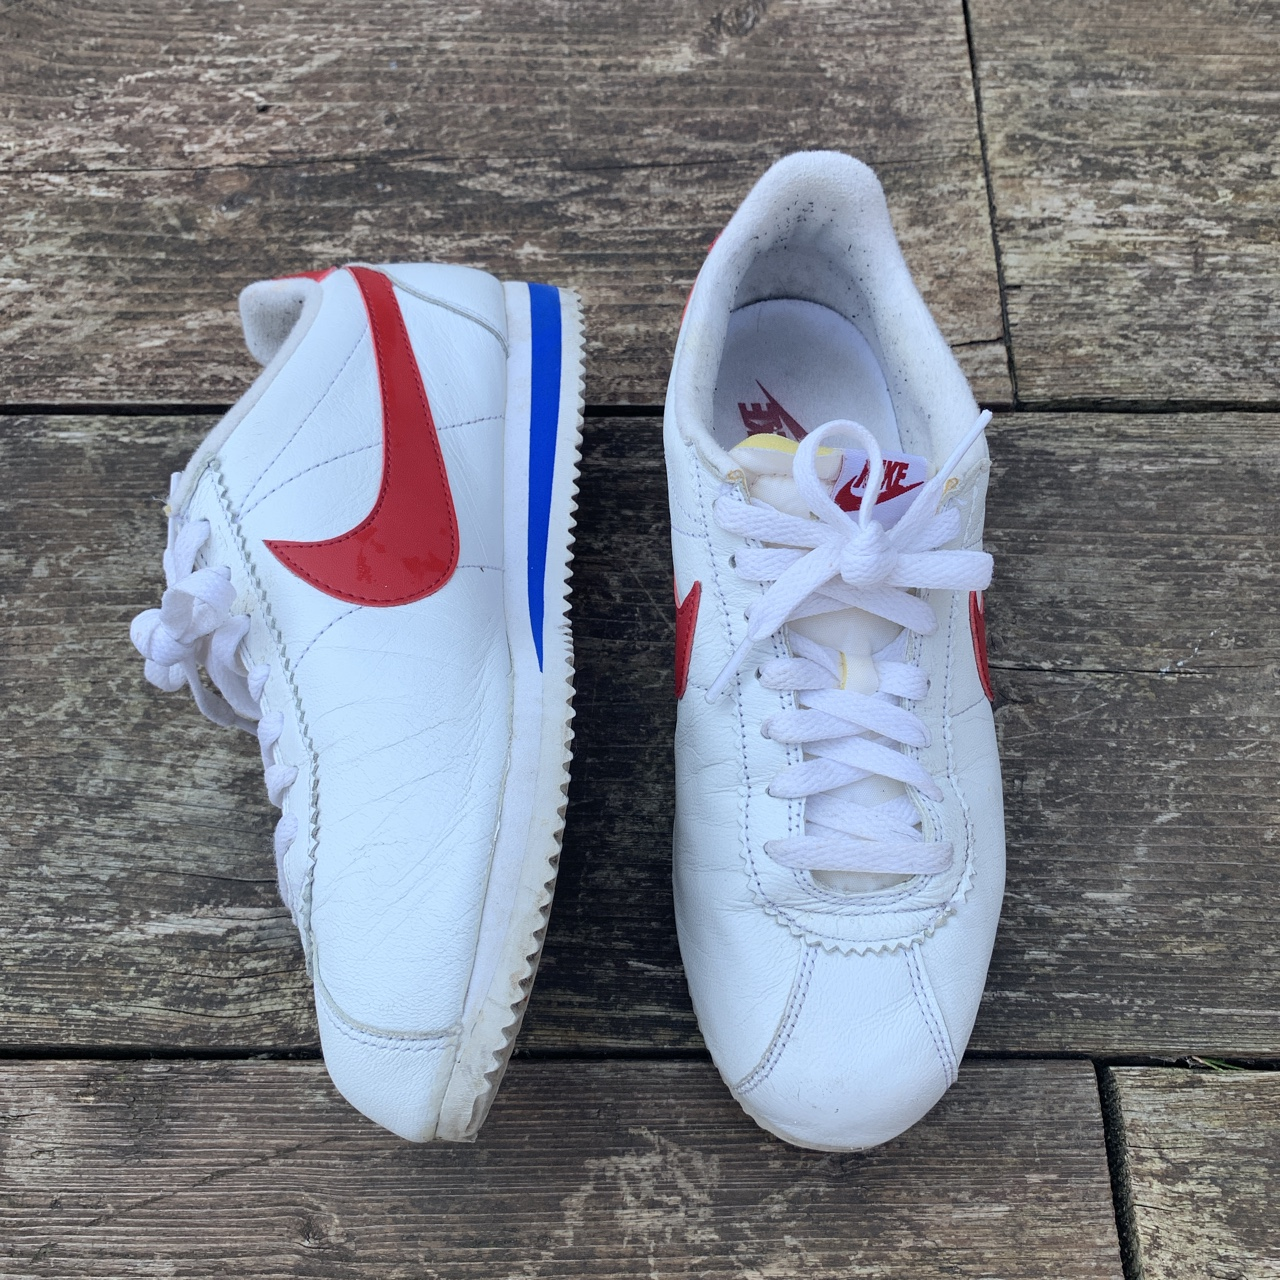 low priced 0a40f bf55b Nike Cortez Forest Gump trainers. In good condition... - Depop